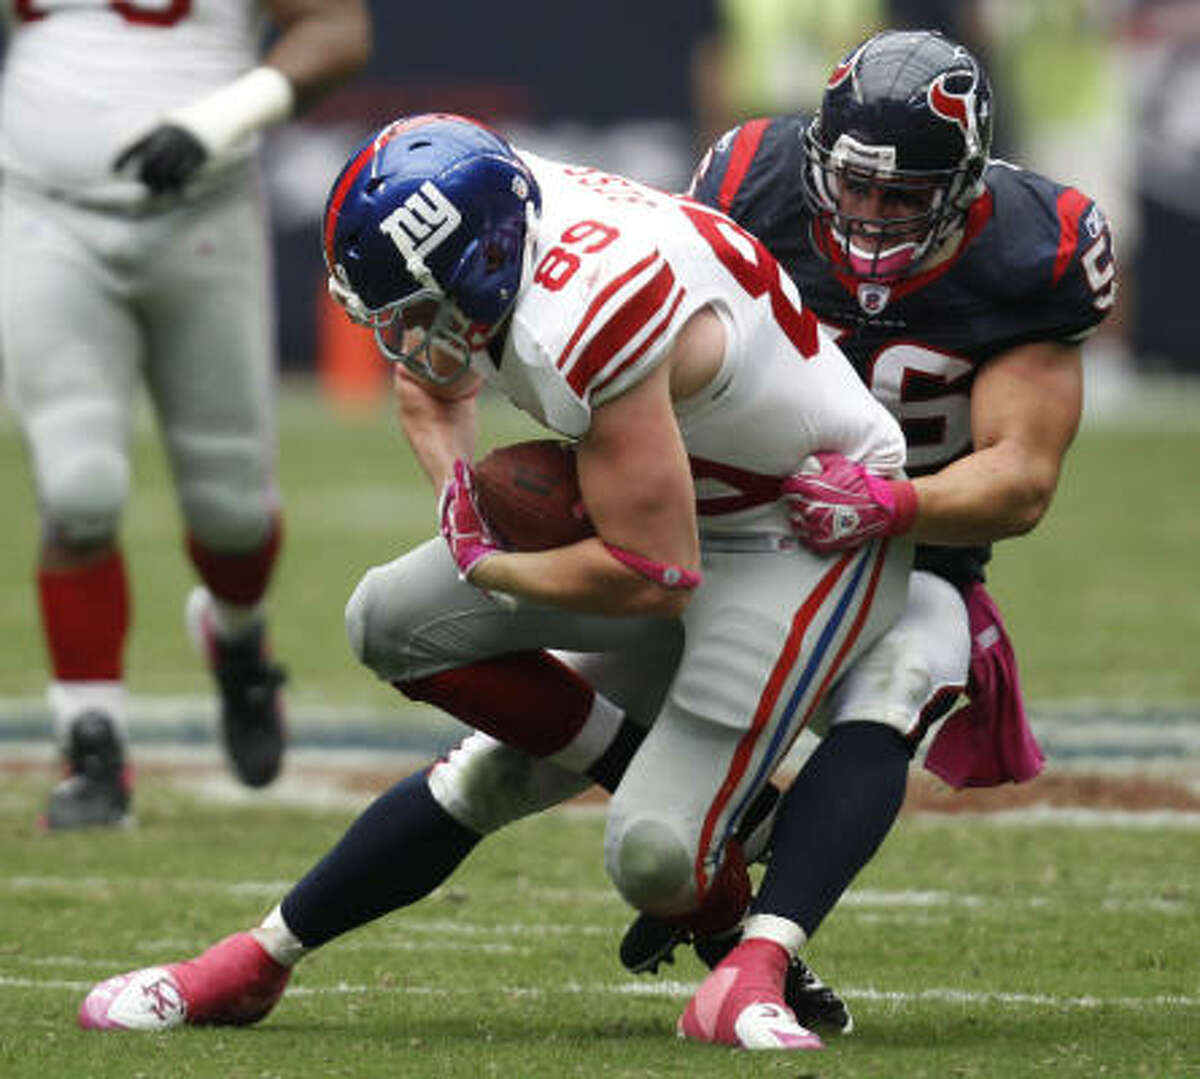 Oct. 10: Giants 34, Texans 10 Giants tight end Kevin Boss (89) is tackled by Texans linebacker Brian Cushing. In his return after the four-game suspension, Cushing had nine tackles, four of which were solo stops.